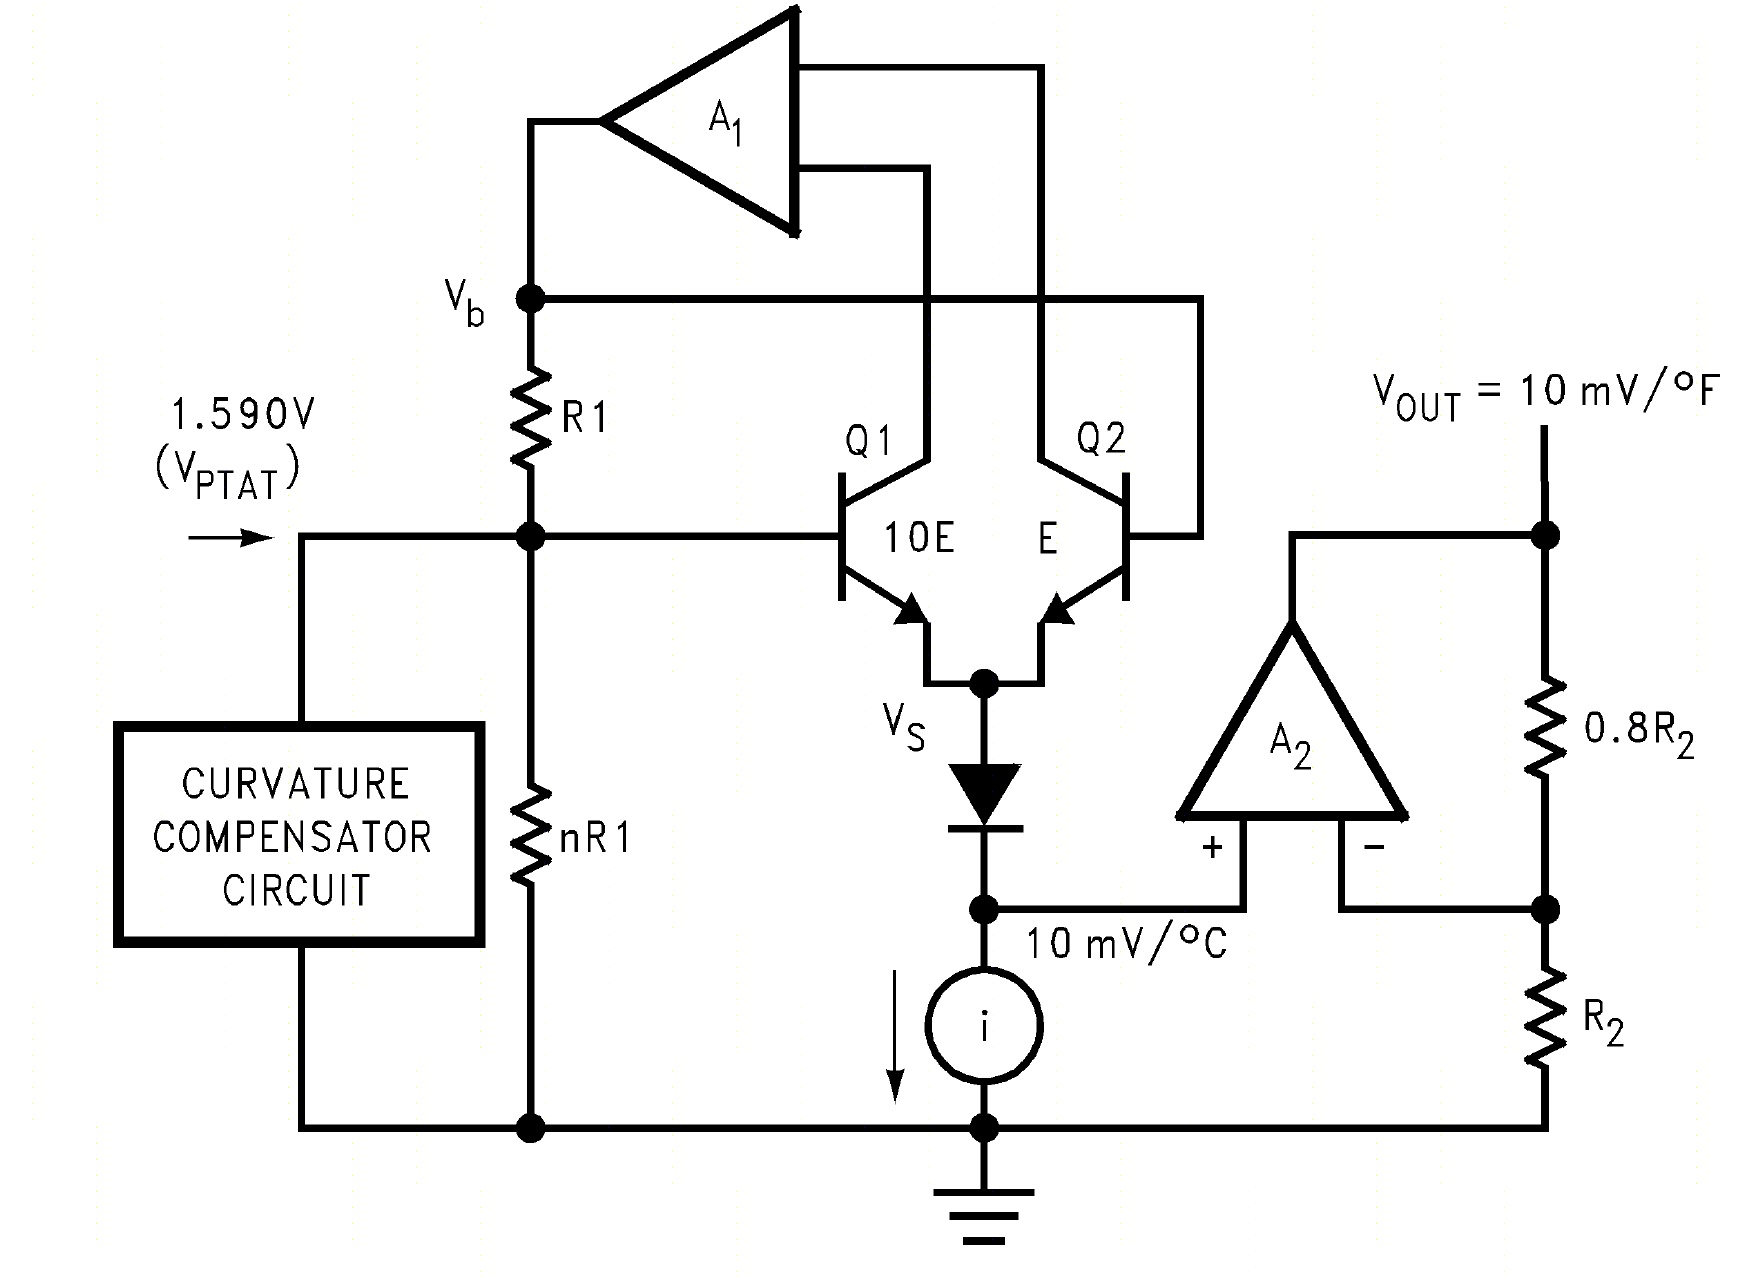 a simple circuit diagram